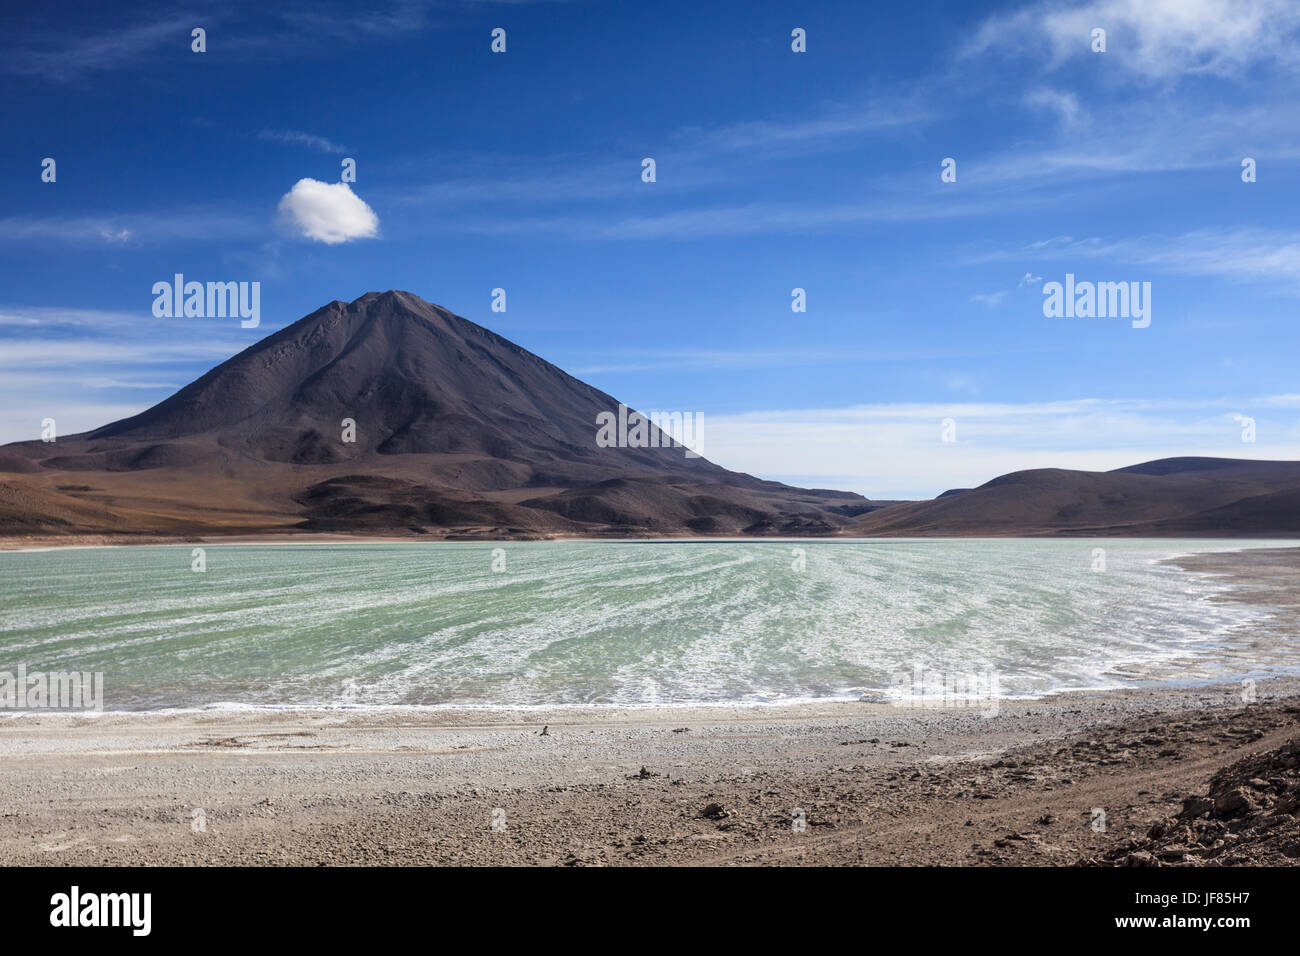 Le volcan Licancabur, Bolivie. Photo Stock